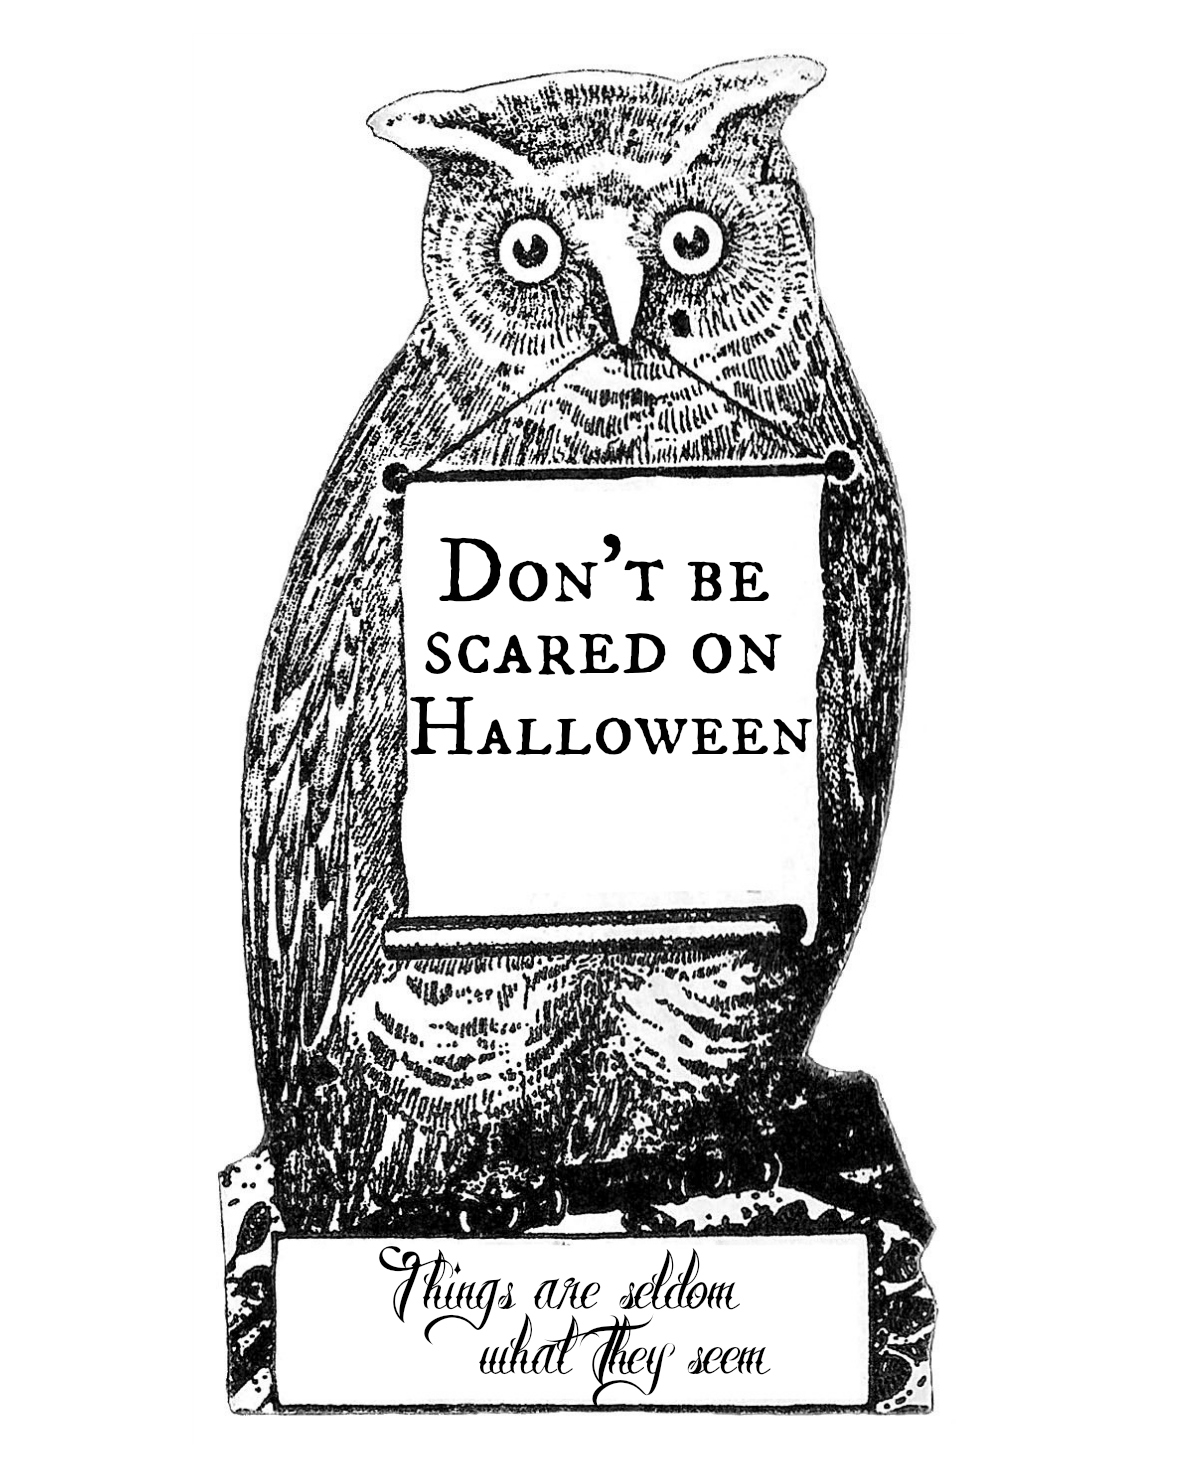 Free Vintage Owl Halloween Printable artwork, Don't be scared on Halloween, things are seldom what they seem